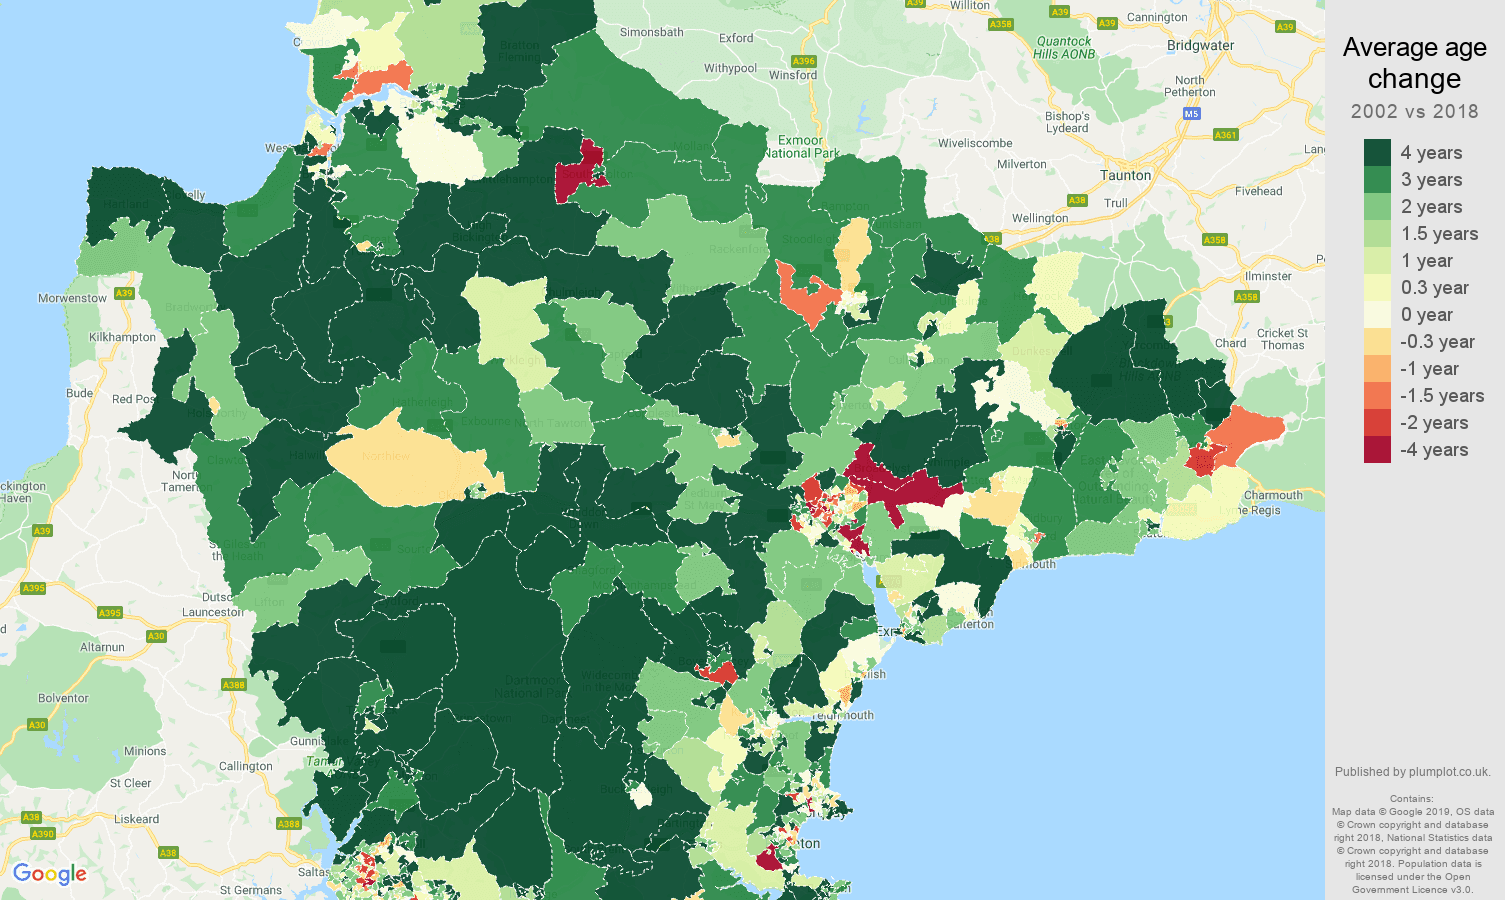 Devon average age change map